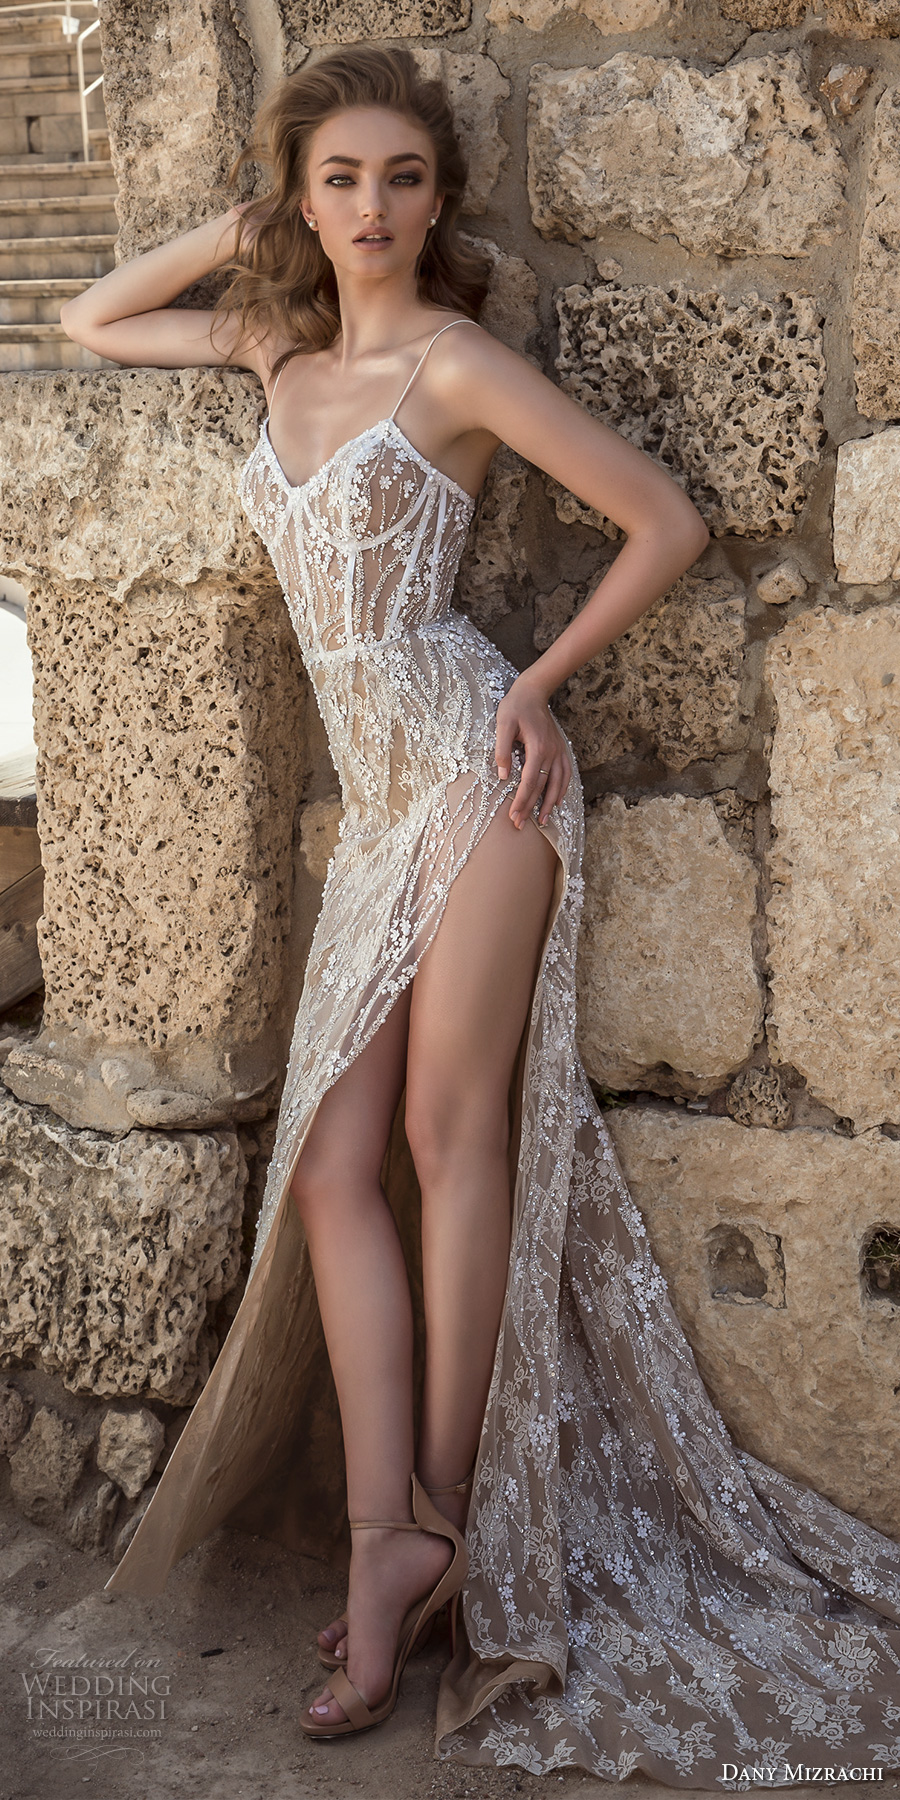 dany mizrachi 2018 bridal spaghetti strap sweetheart neckline full embellishment high side slit nude color sexy a line wedding dress short train (4) mv